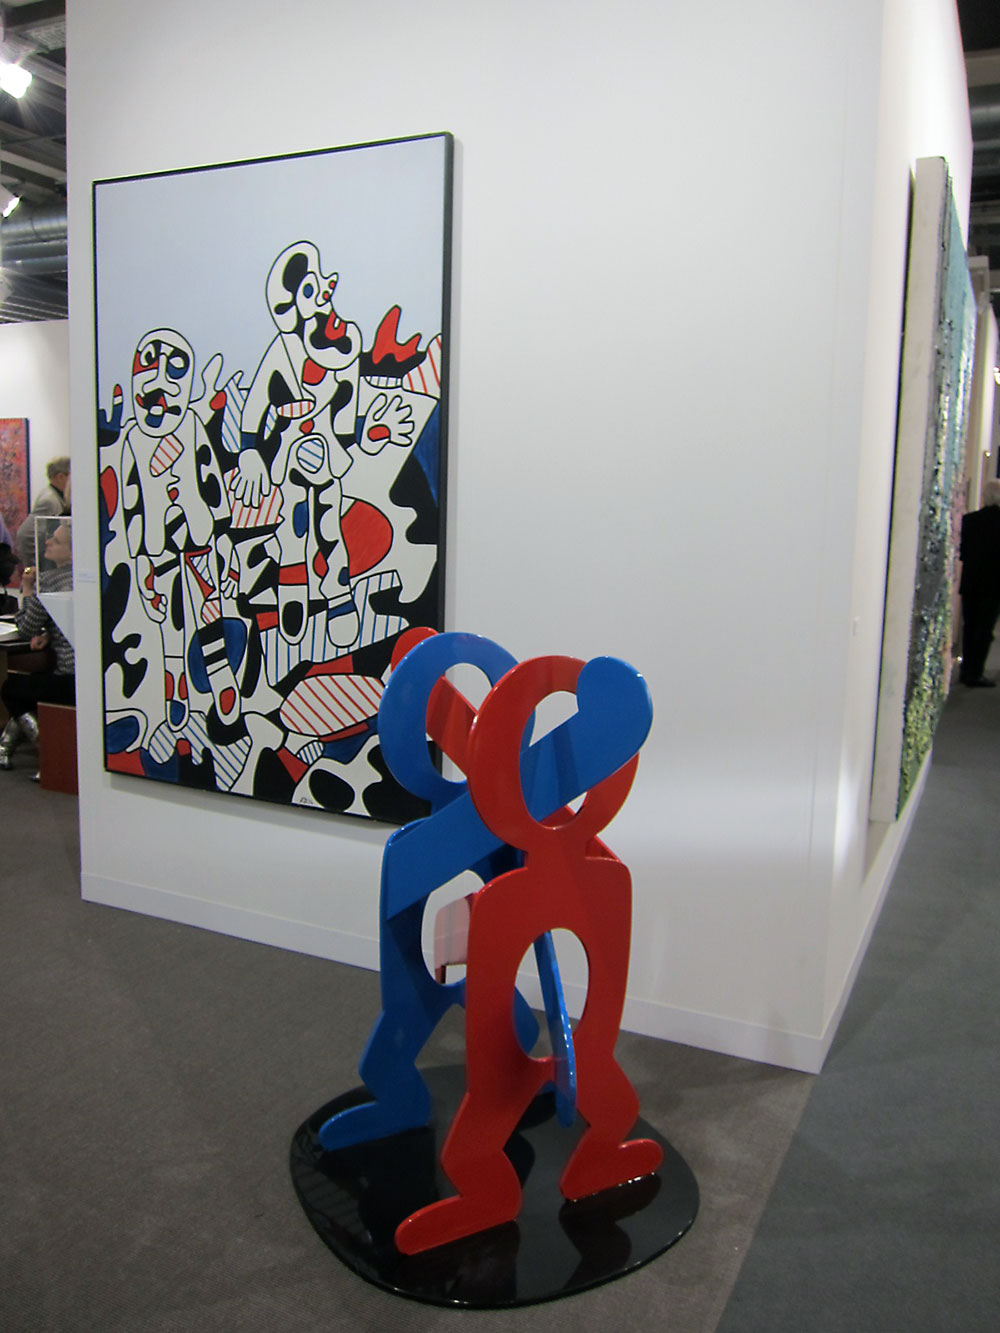 Dubuffet and Haring